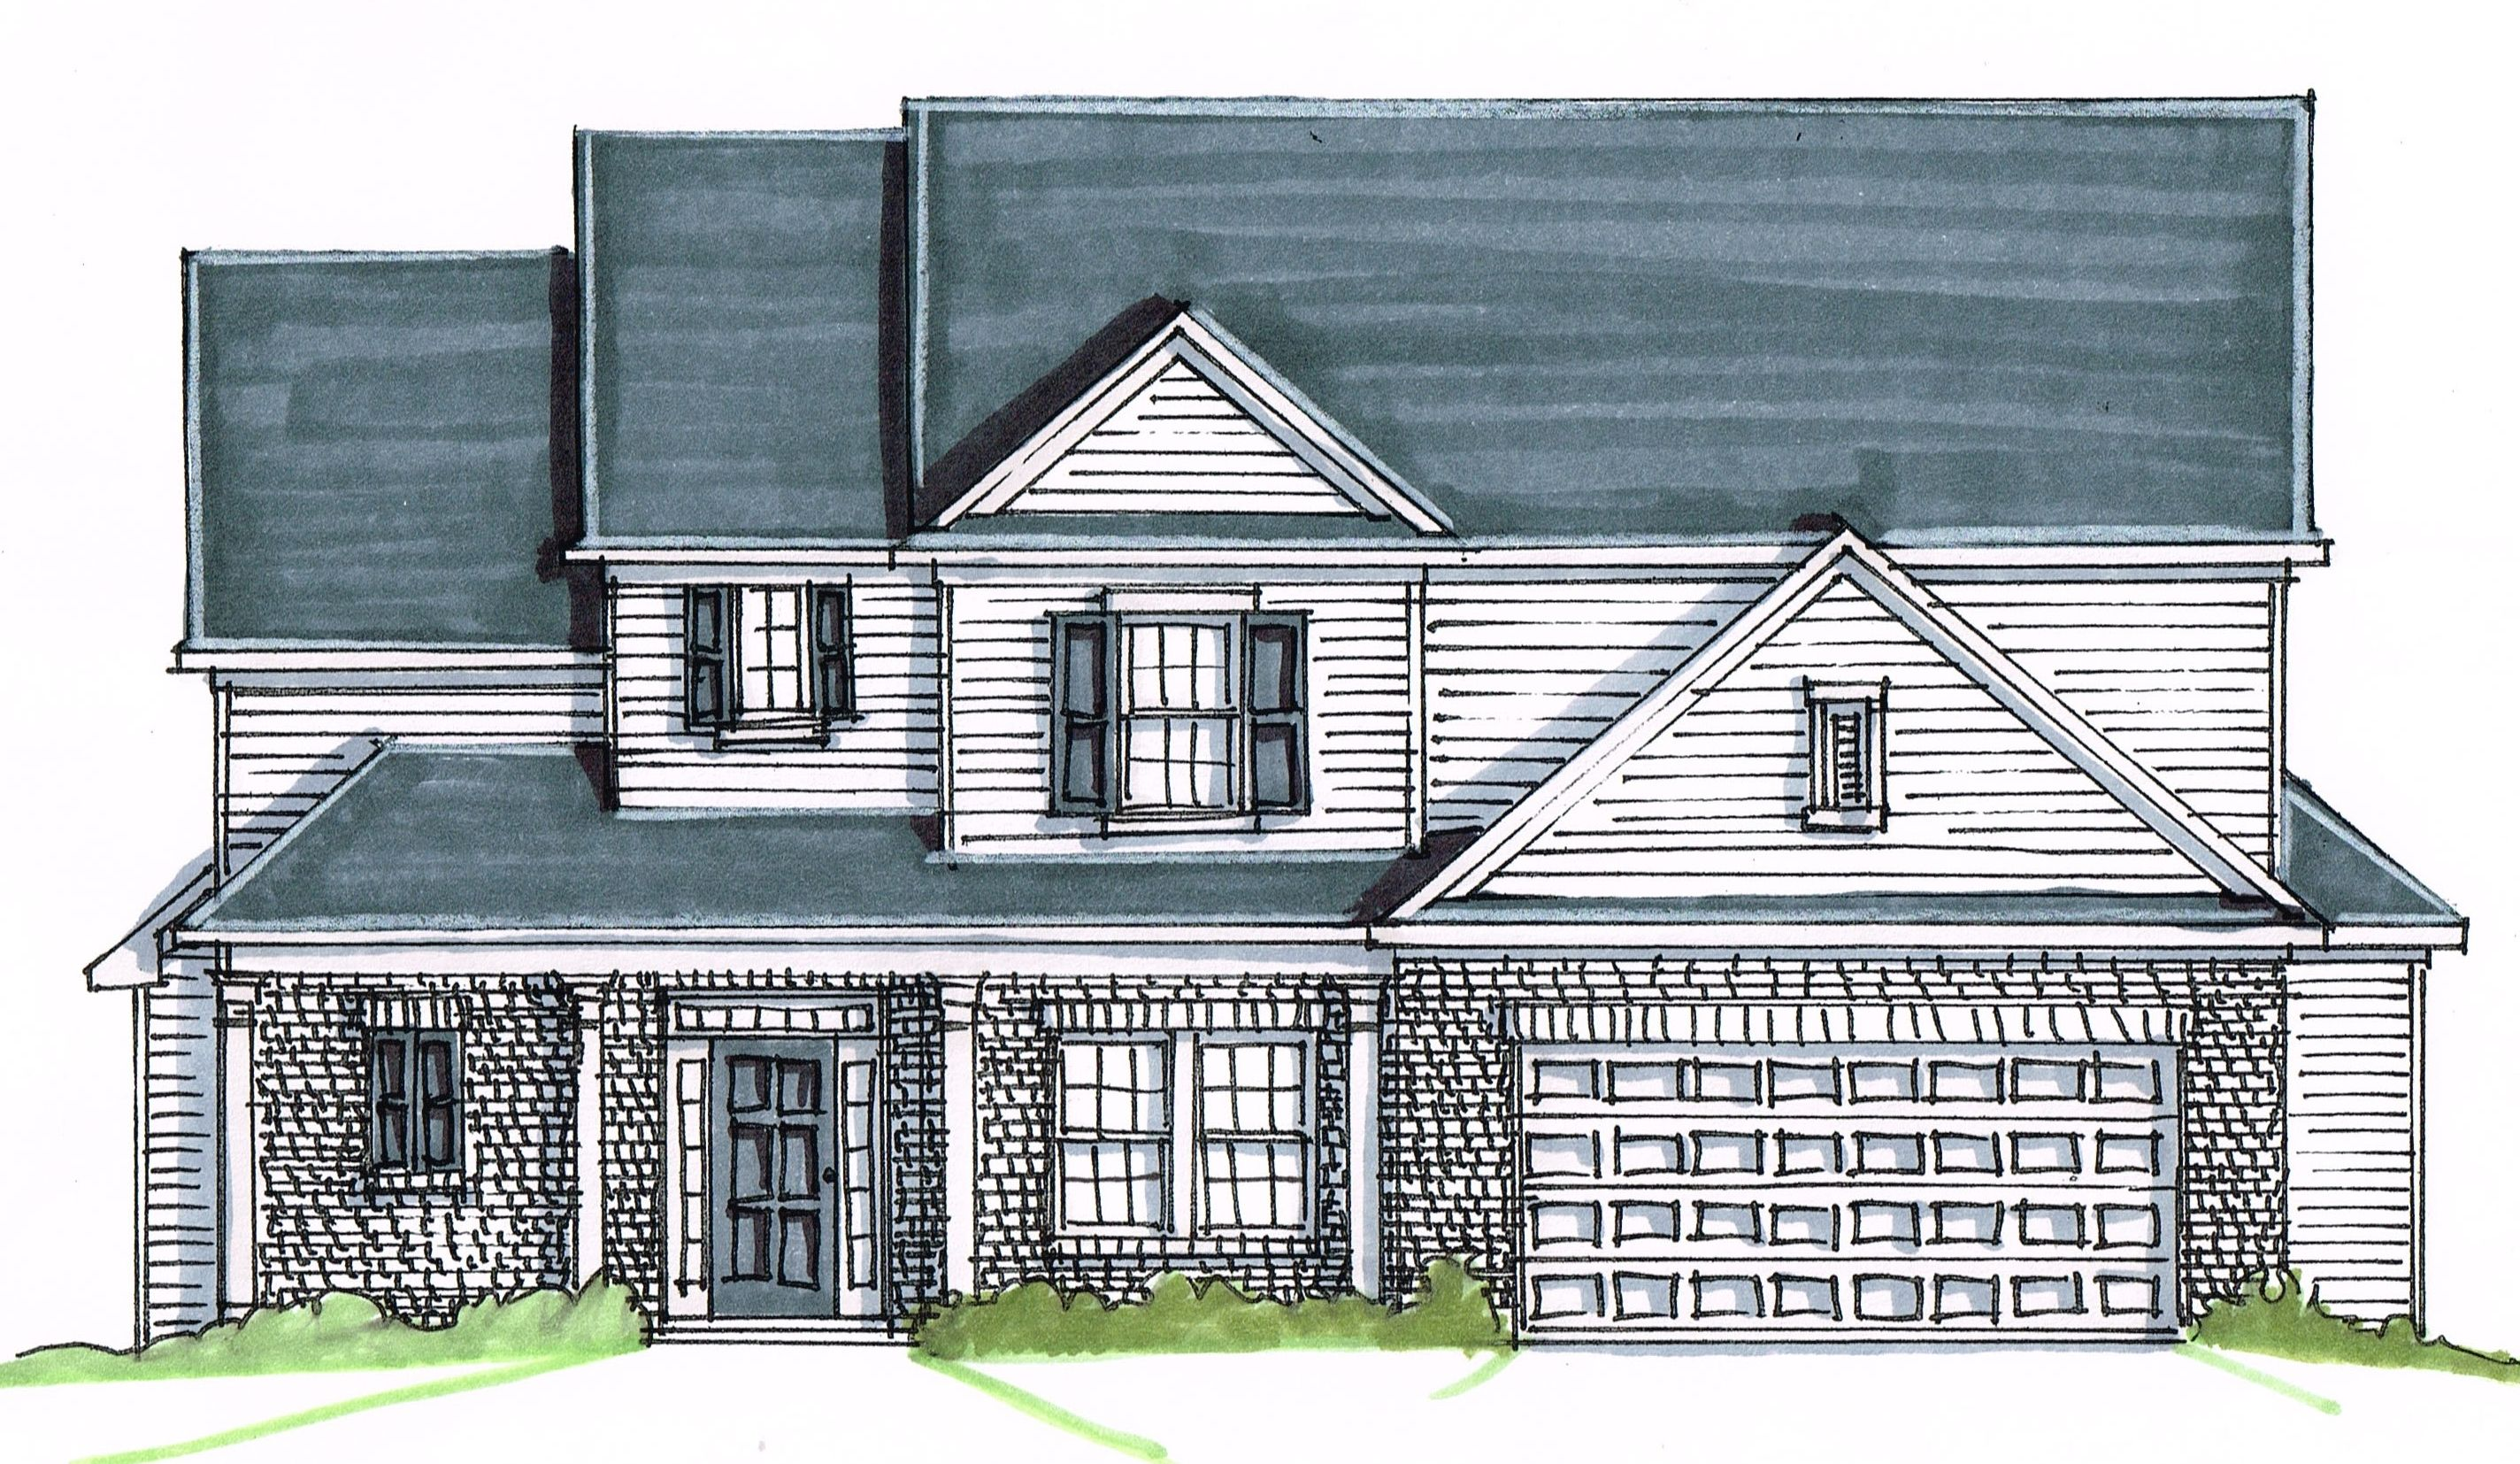 Single Family for Active at Sable Oaks - River Oak - Georgia 10230 Sable Court Midland, Georgia 31820 United States